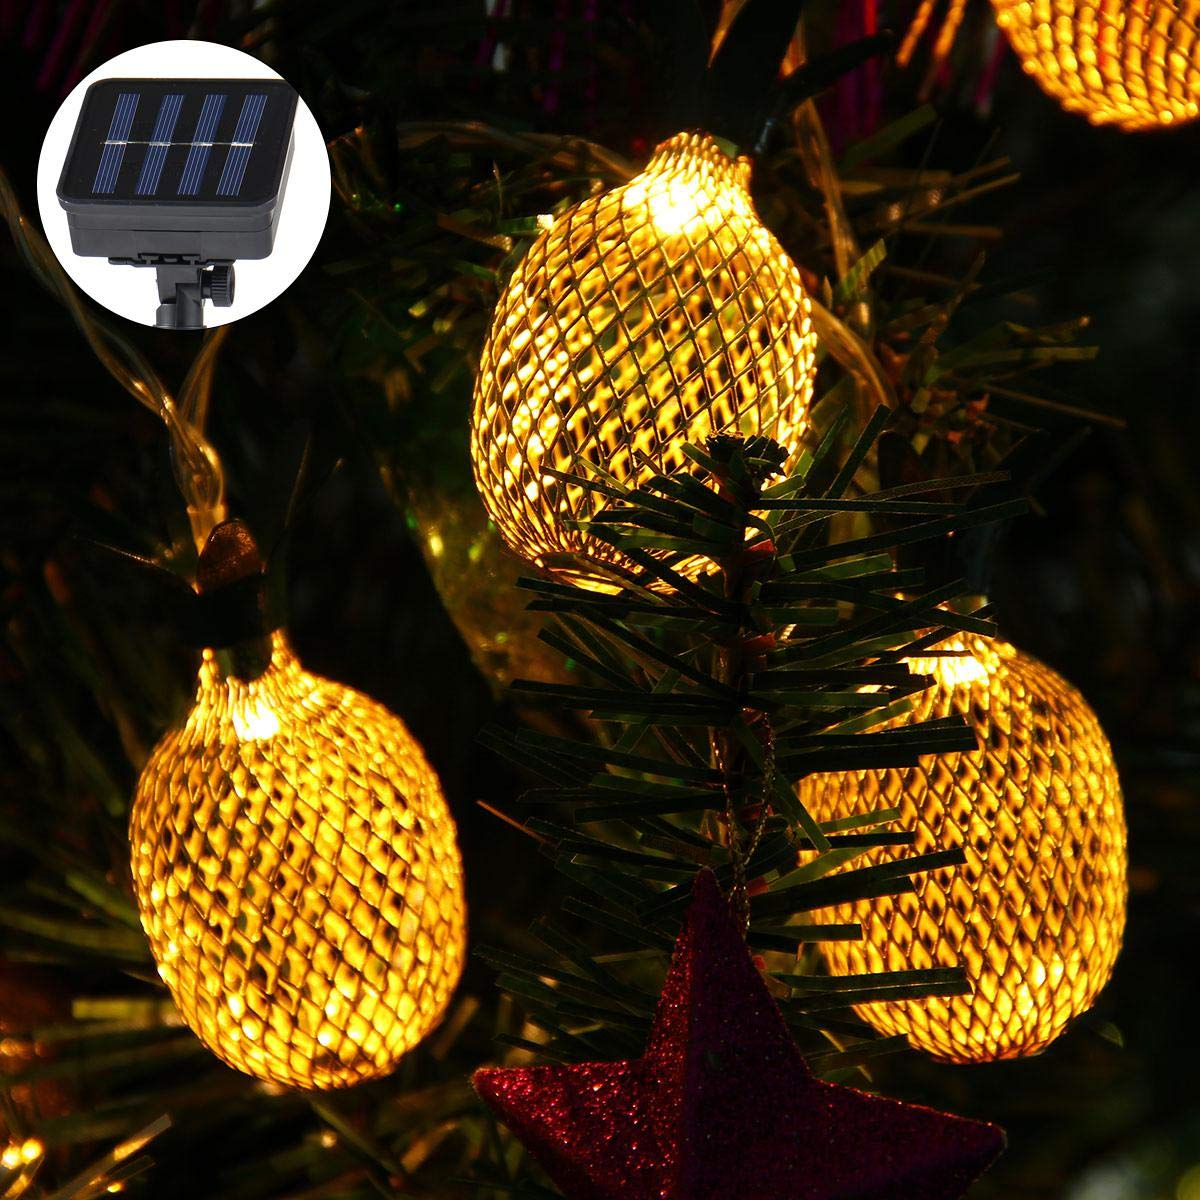 Pineapple String Lights, 200in/5m 40 LED Bulbs WaterproofSolar ChargingLantern String Lights with 2 Light Mode Fairy Lights for Wedding Garden Festival Party Halloween Christmas Indoor & Outdoor by Umiwe (Image #7)